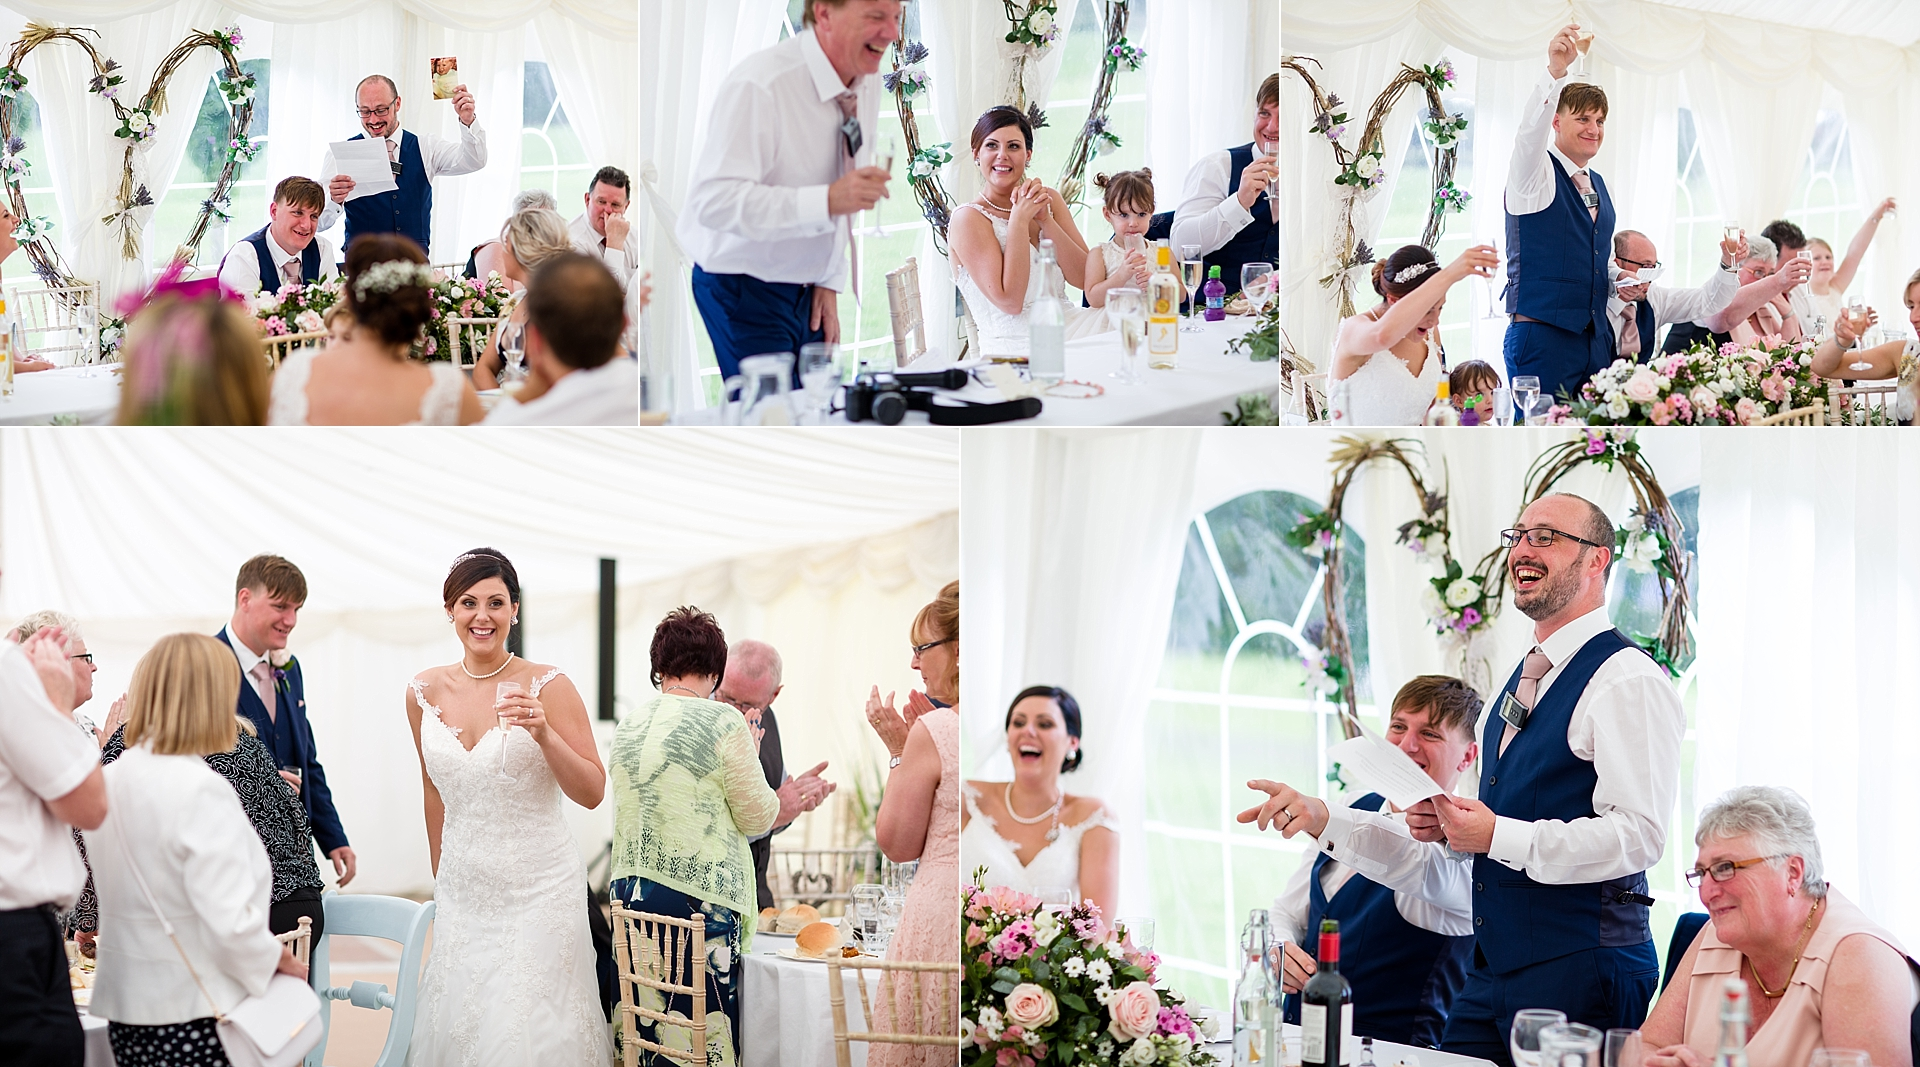 wedding photographer crewe Buddileigh 14.jpg